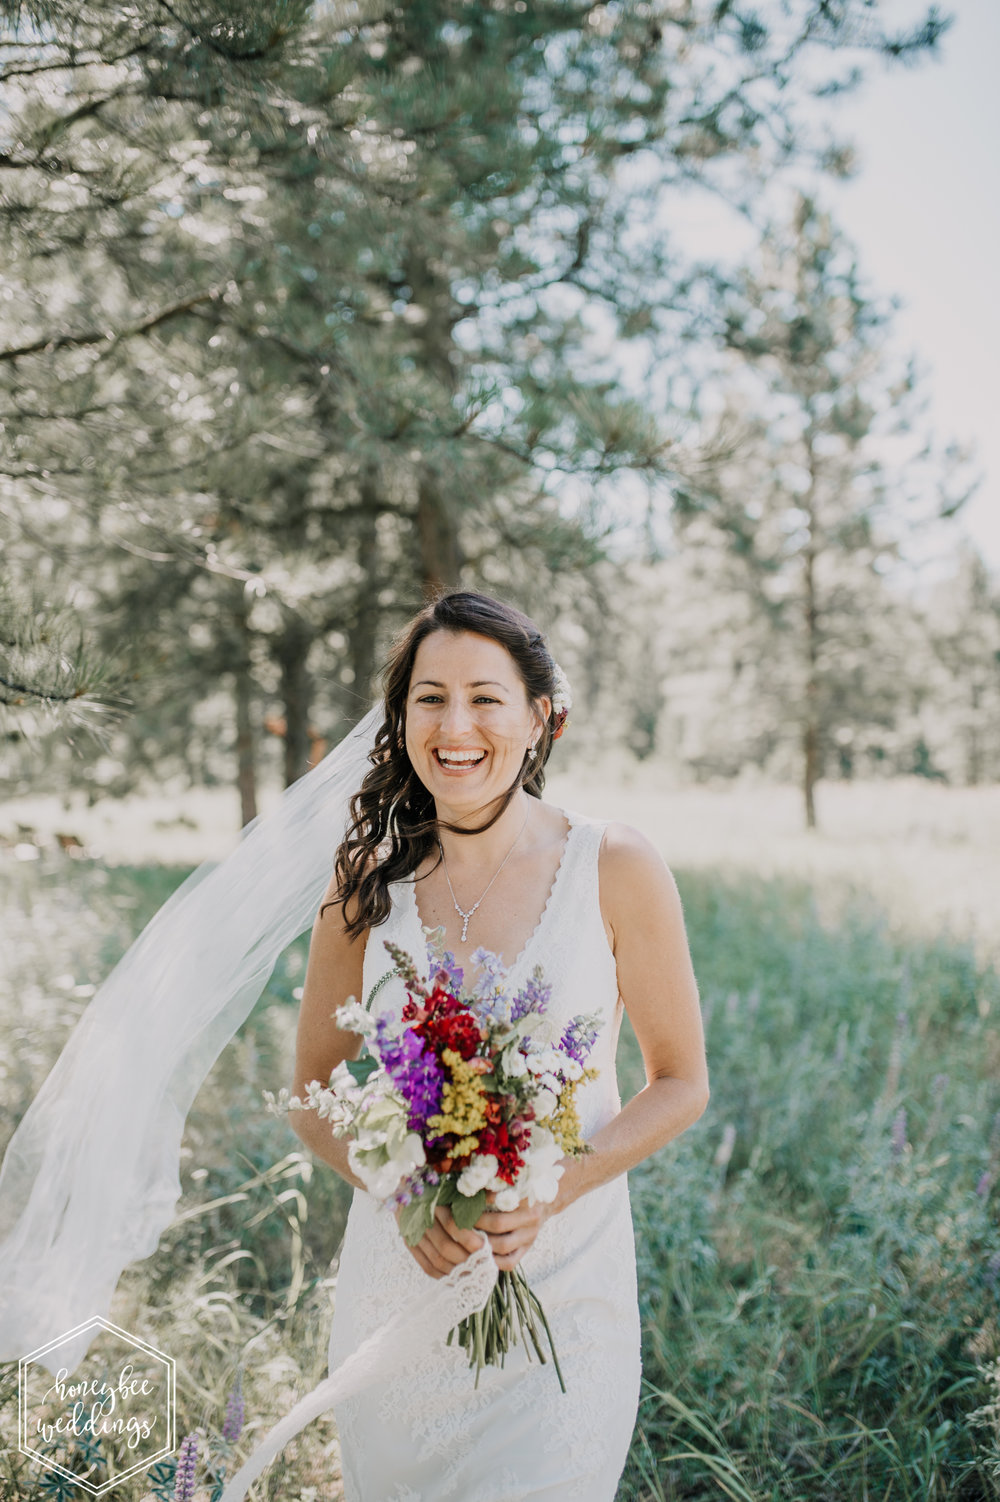 158 White Raven Wedding_Montana Wedding Photographer_Honeybee Weddings_ Meghan Maloney + Arza Hammond 2018-0110-2.jpg